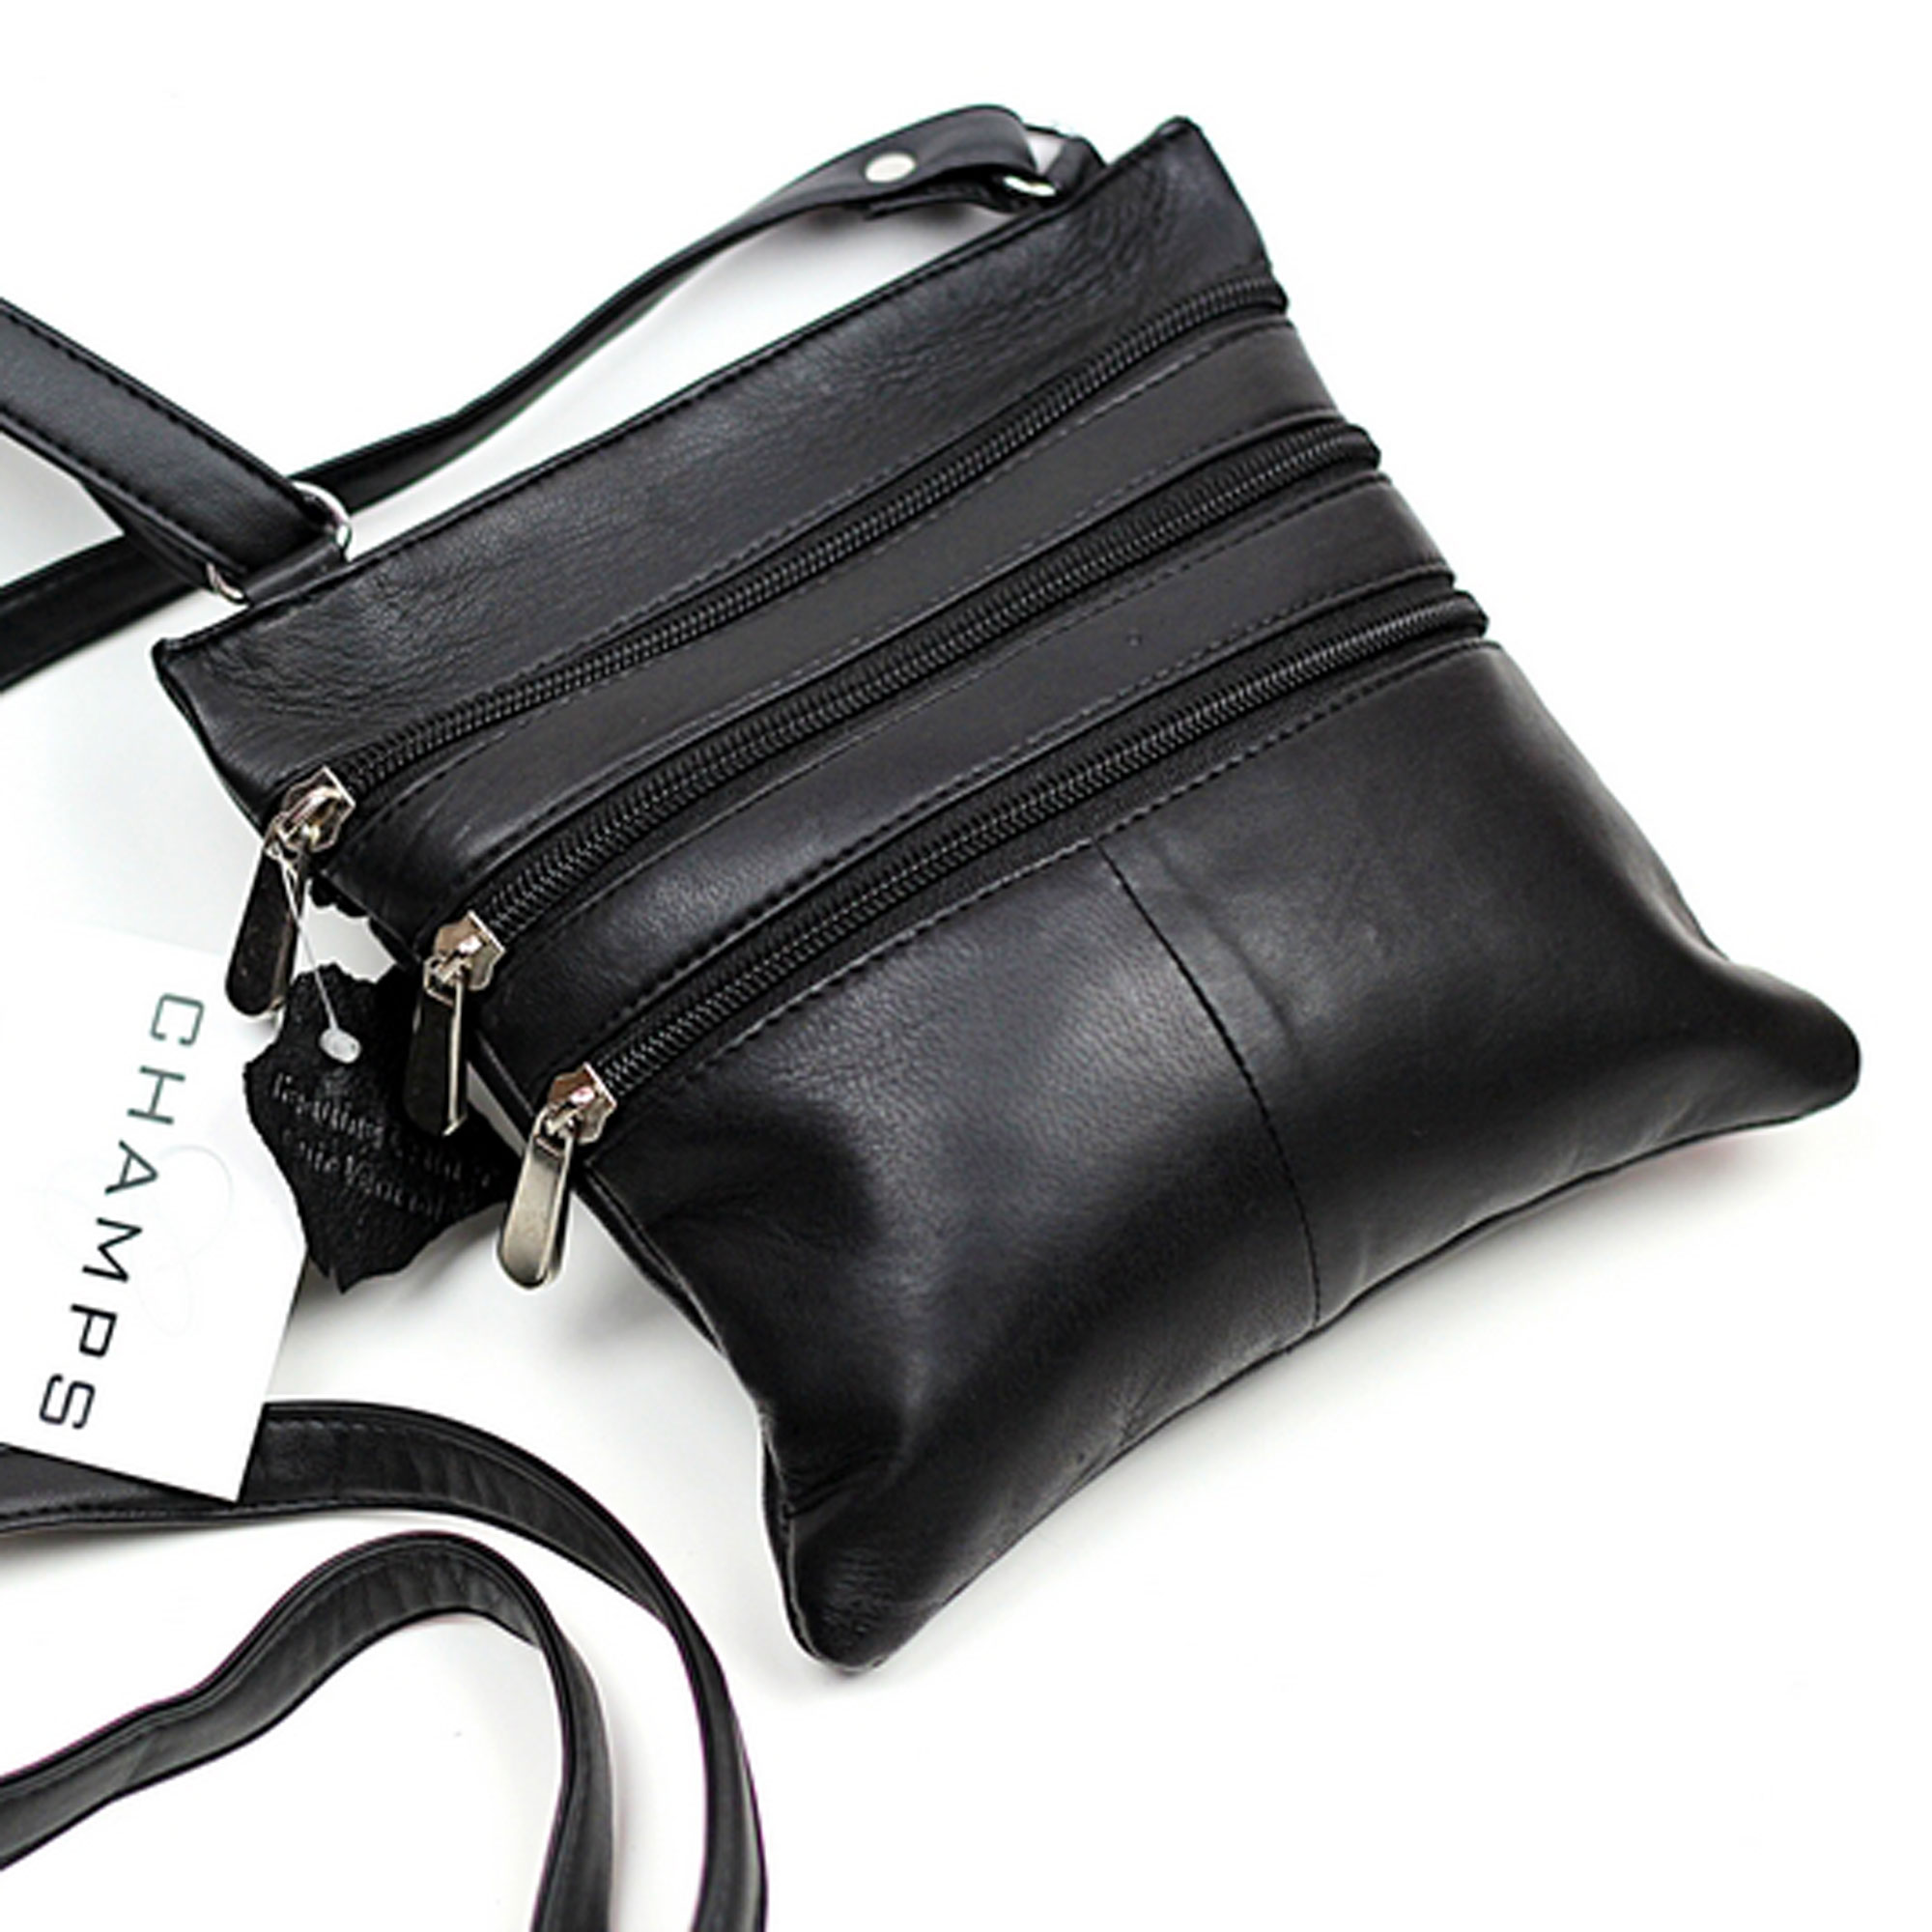 Champs - Leather Crossbody Sling Bag 1027